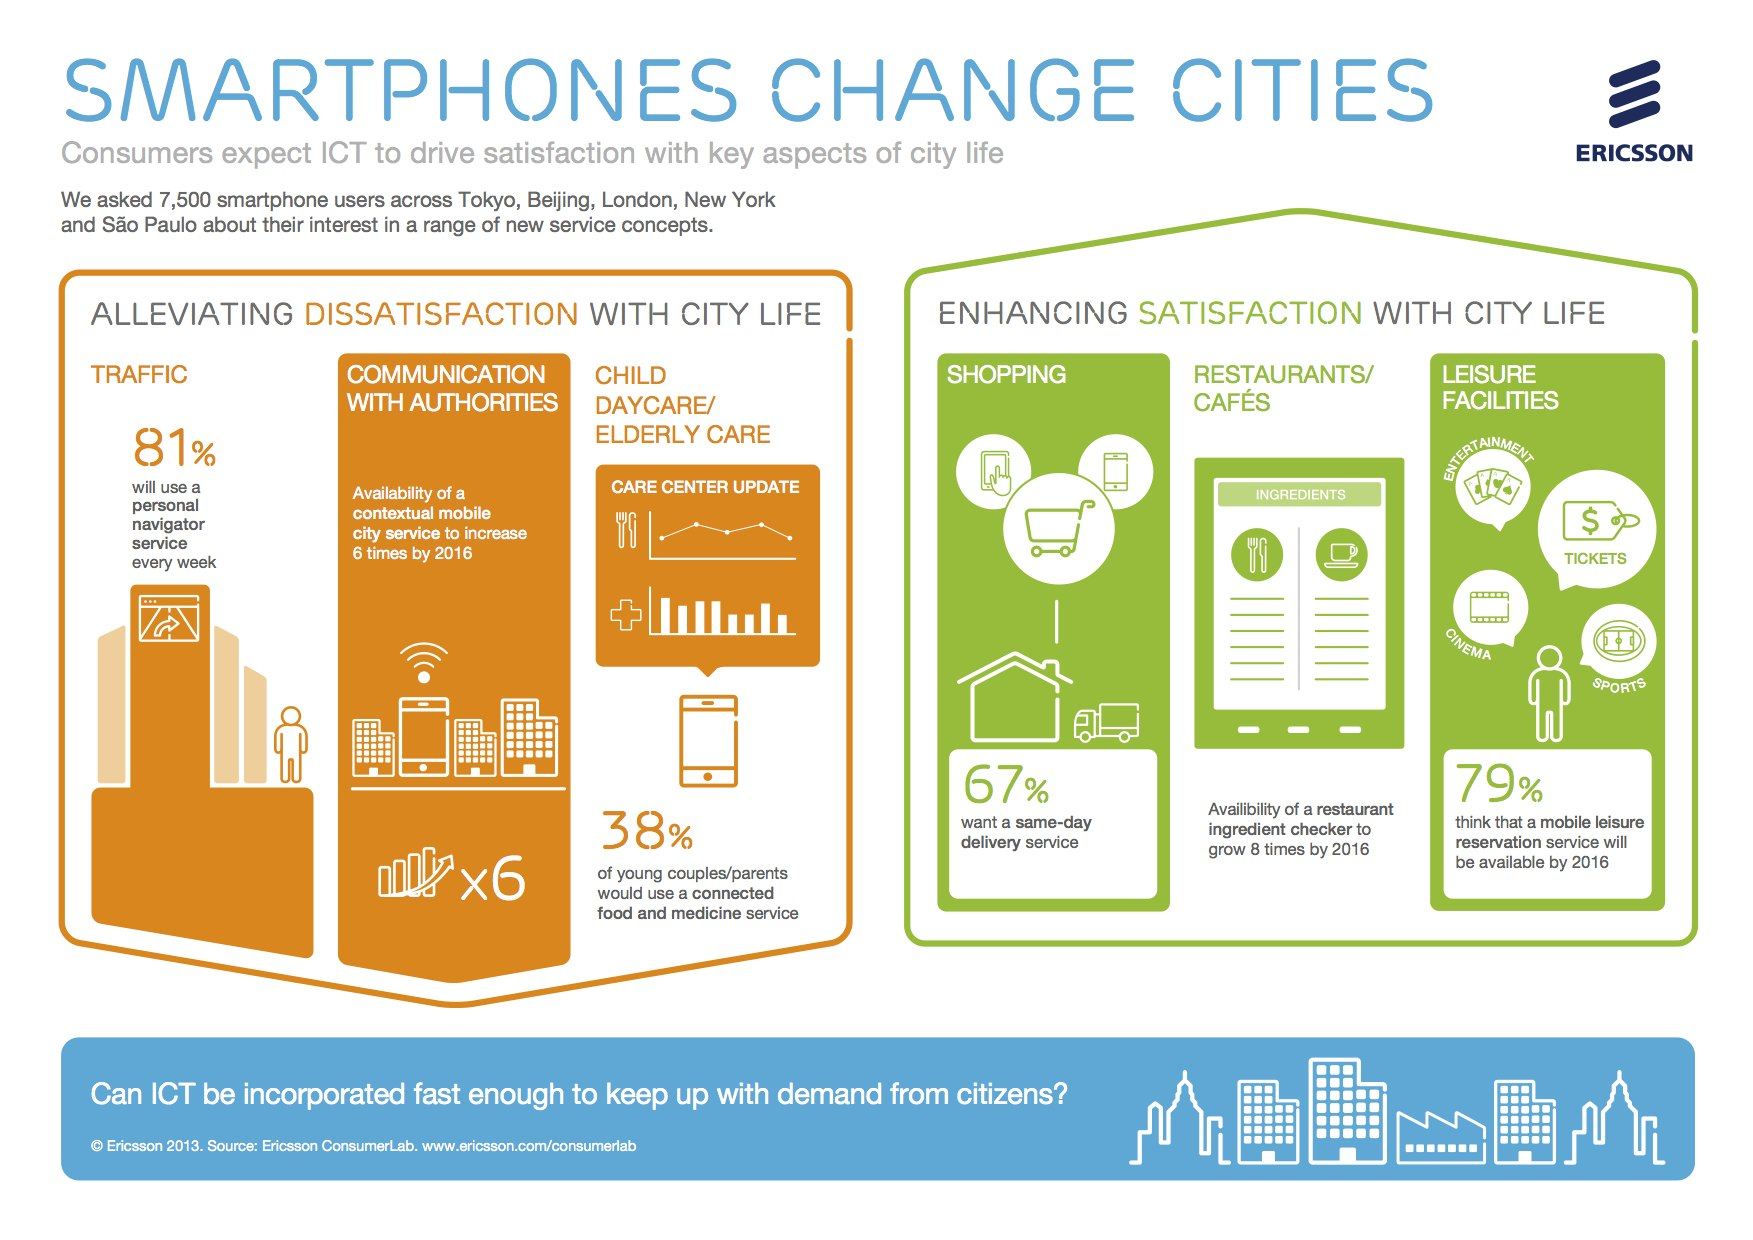 Smartphones change cities by Ericsson